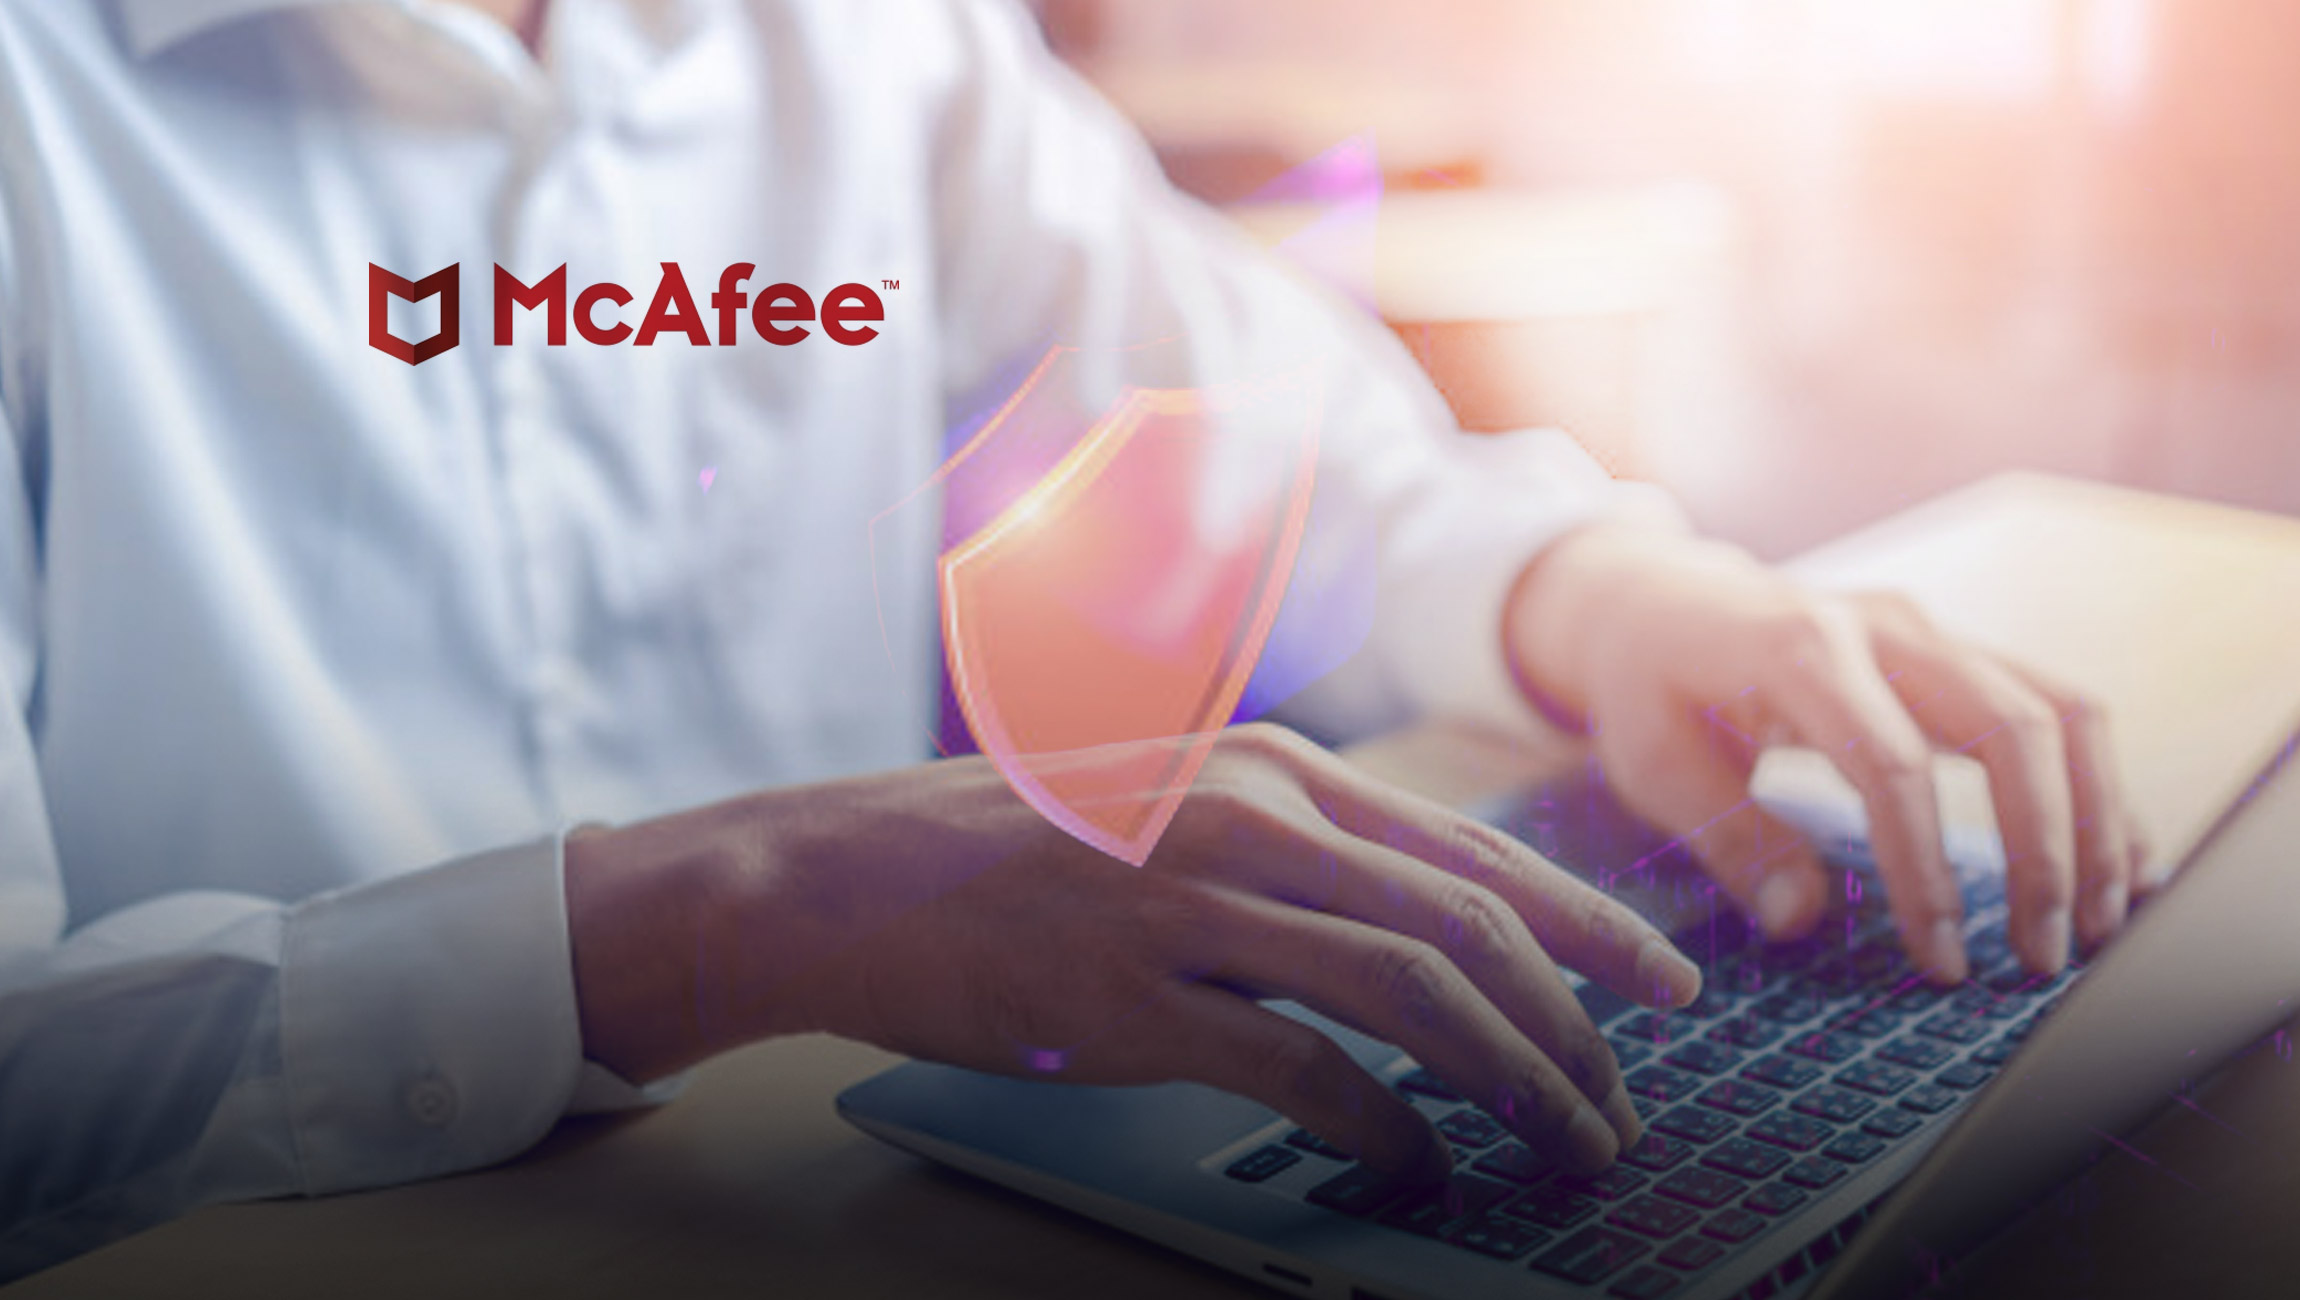 McAfee Finds Increase in Online Holiday Shopping Creates the Perfect Storm for Cyber Crime